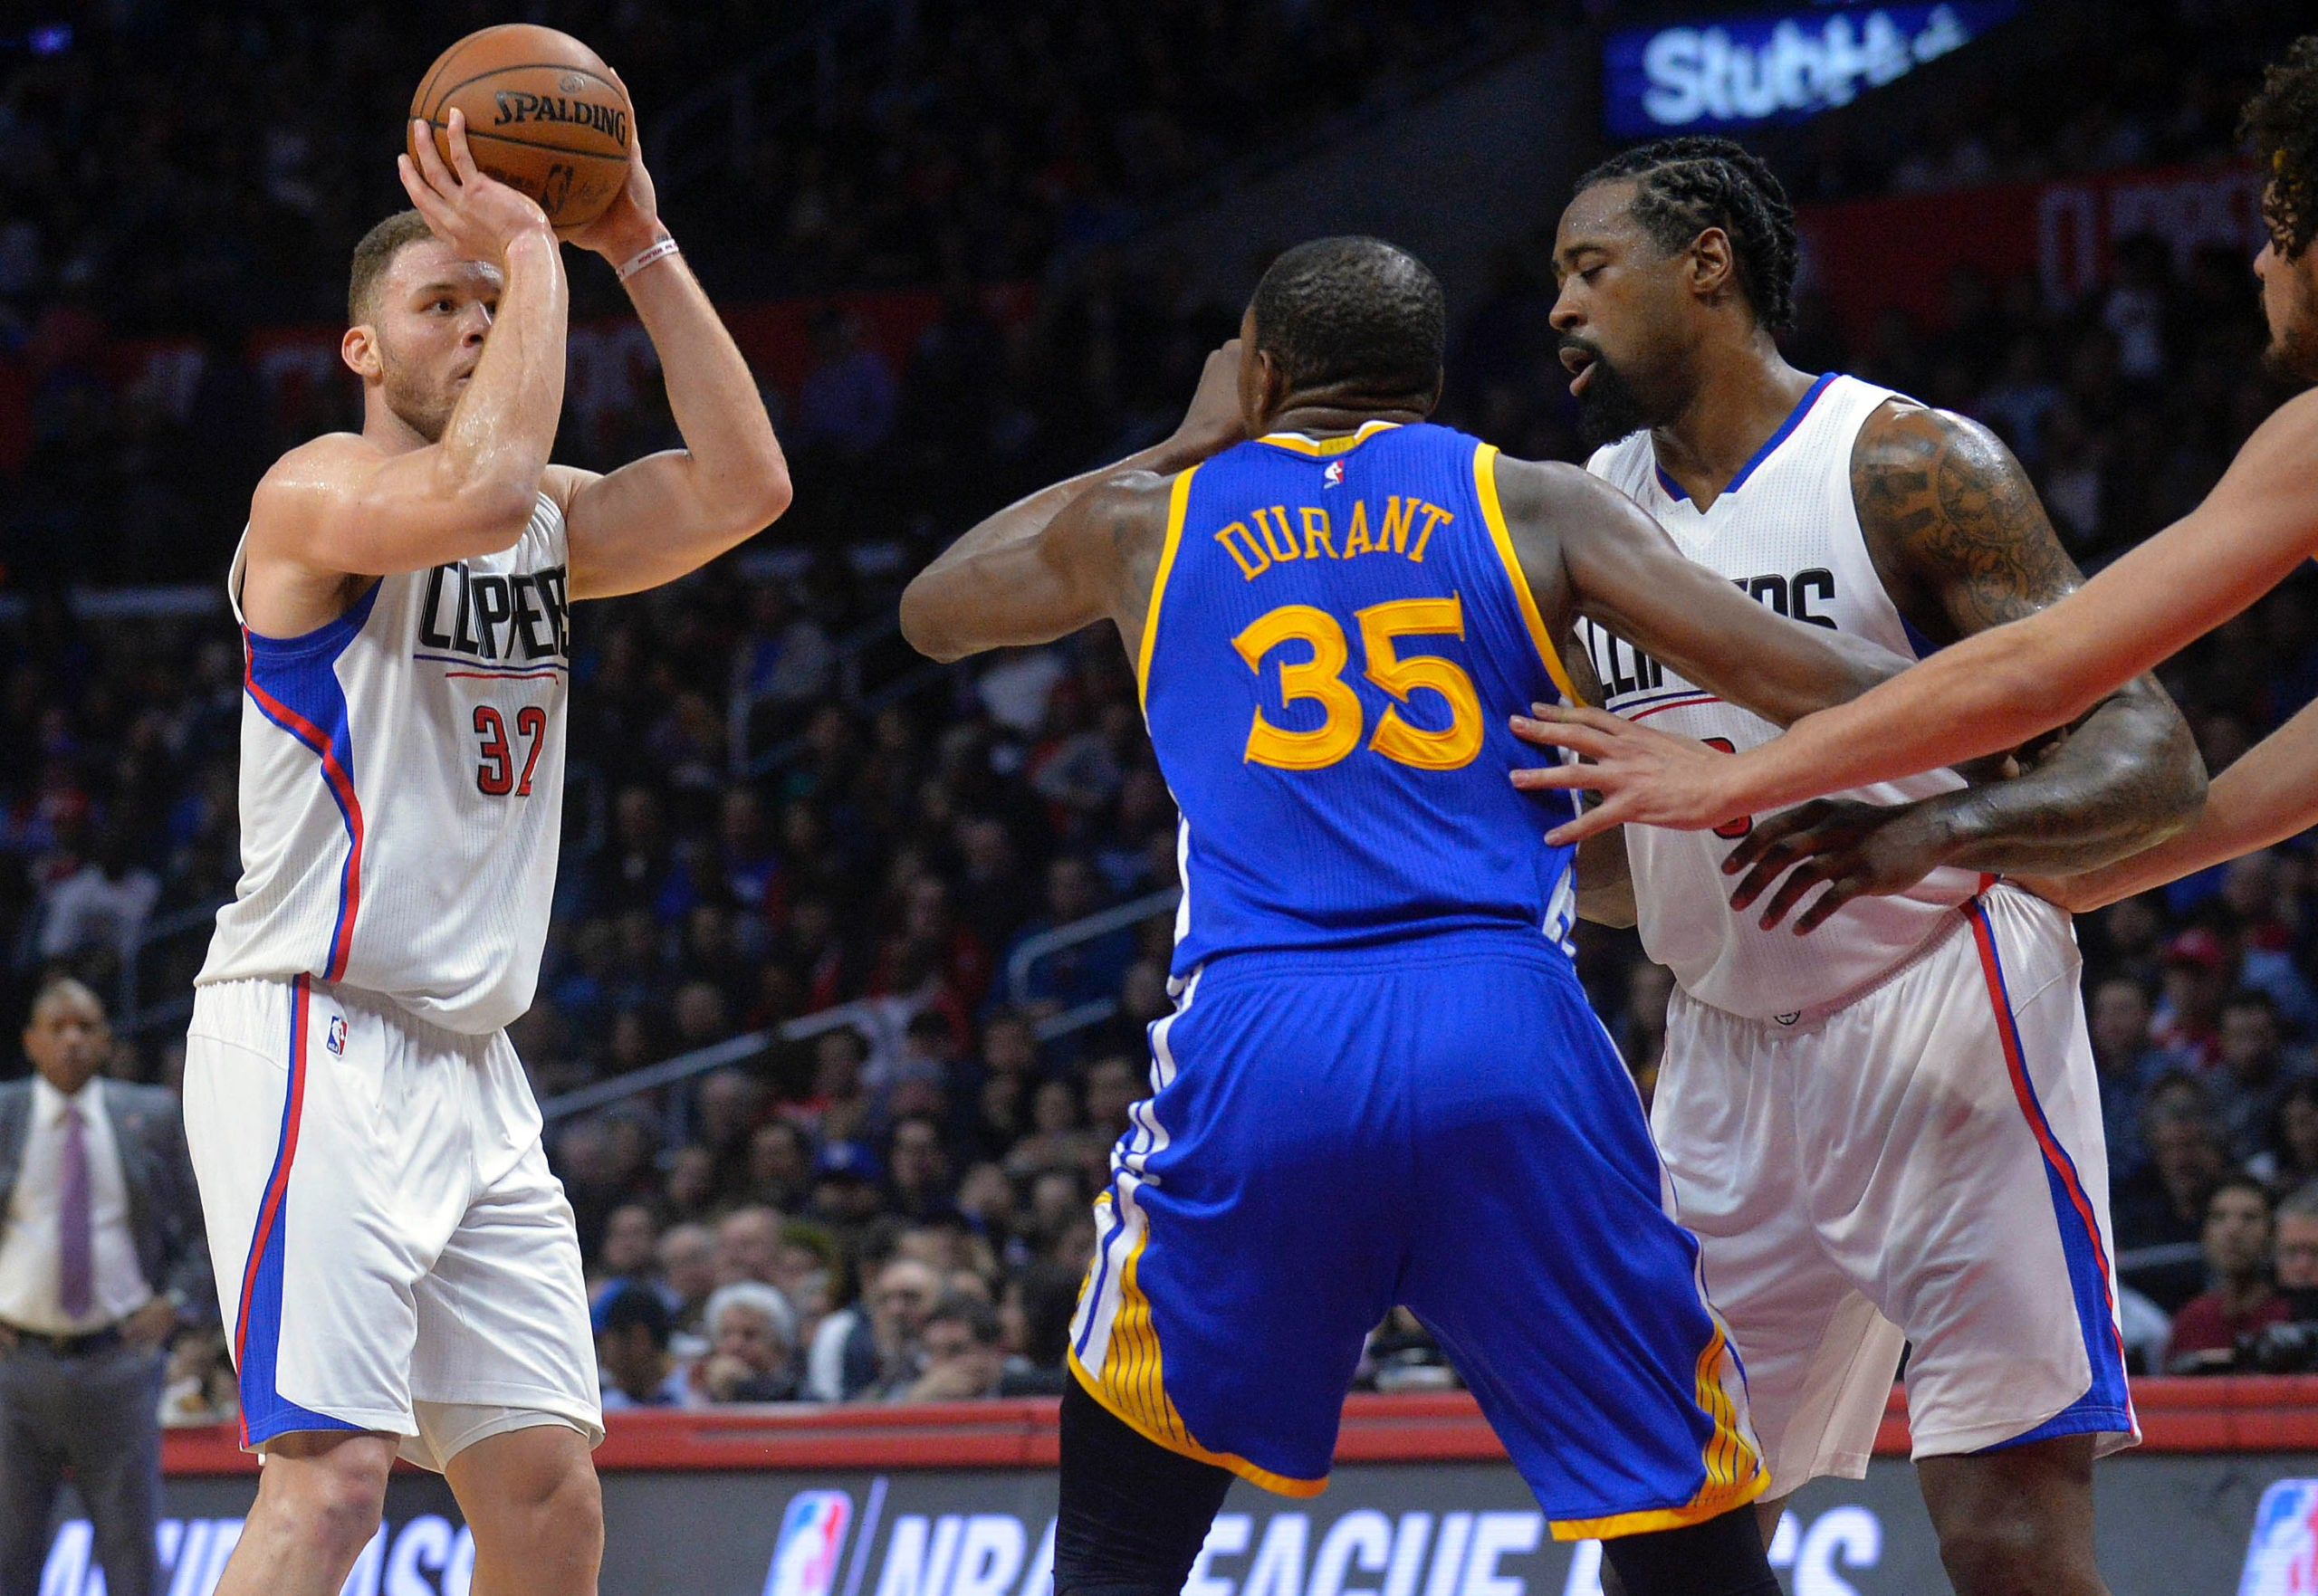 Angeles Clippers vs Golden State Warriors